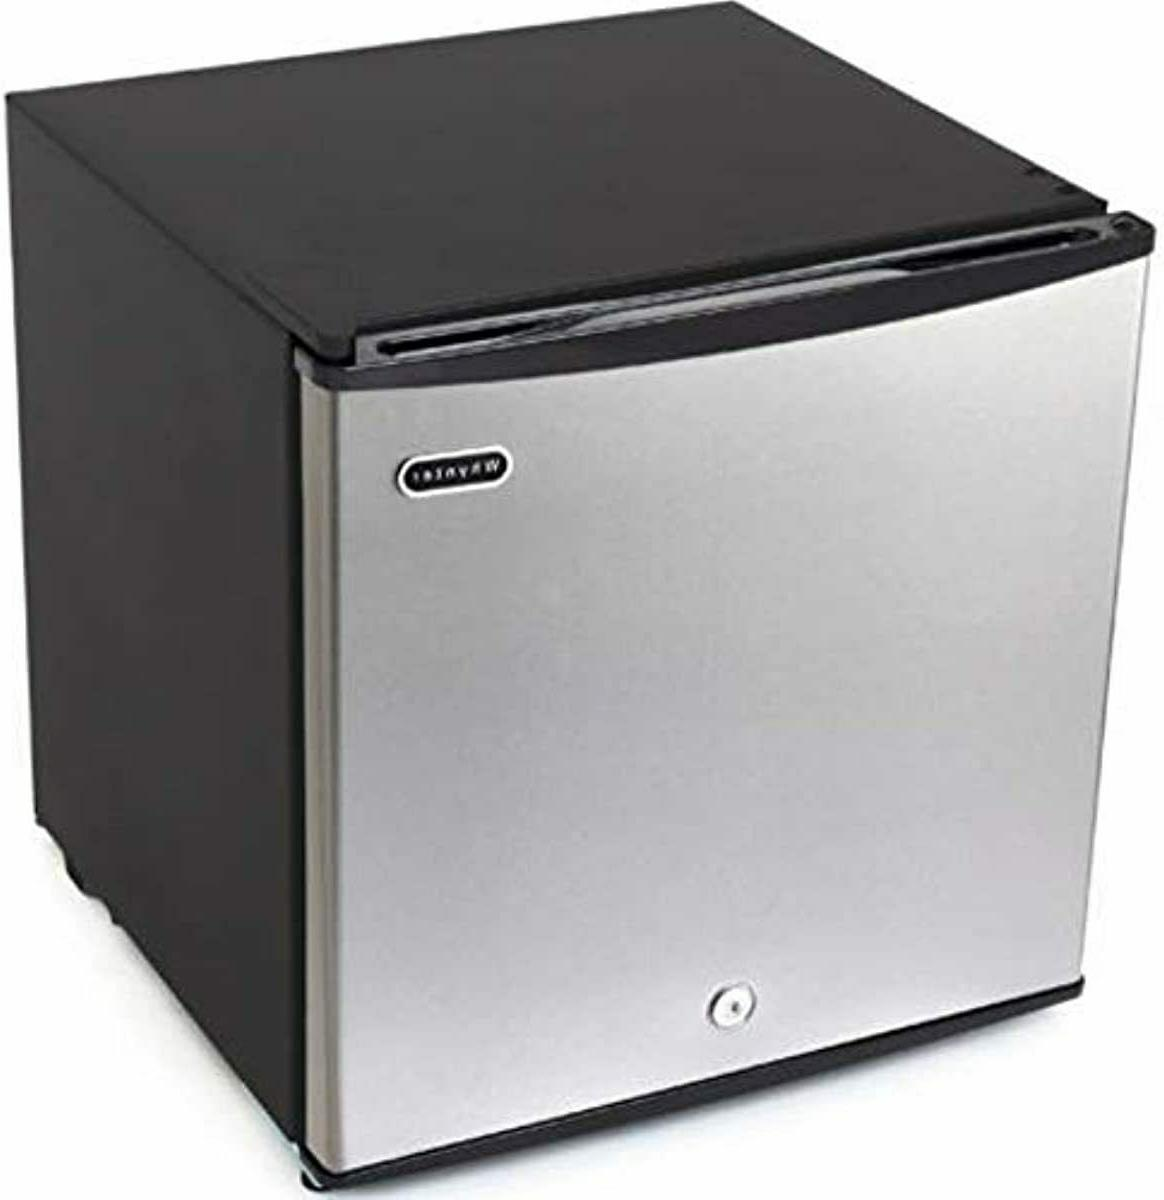 1.1 cubic feet Upright Freezer Stainless